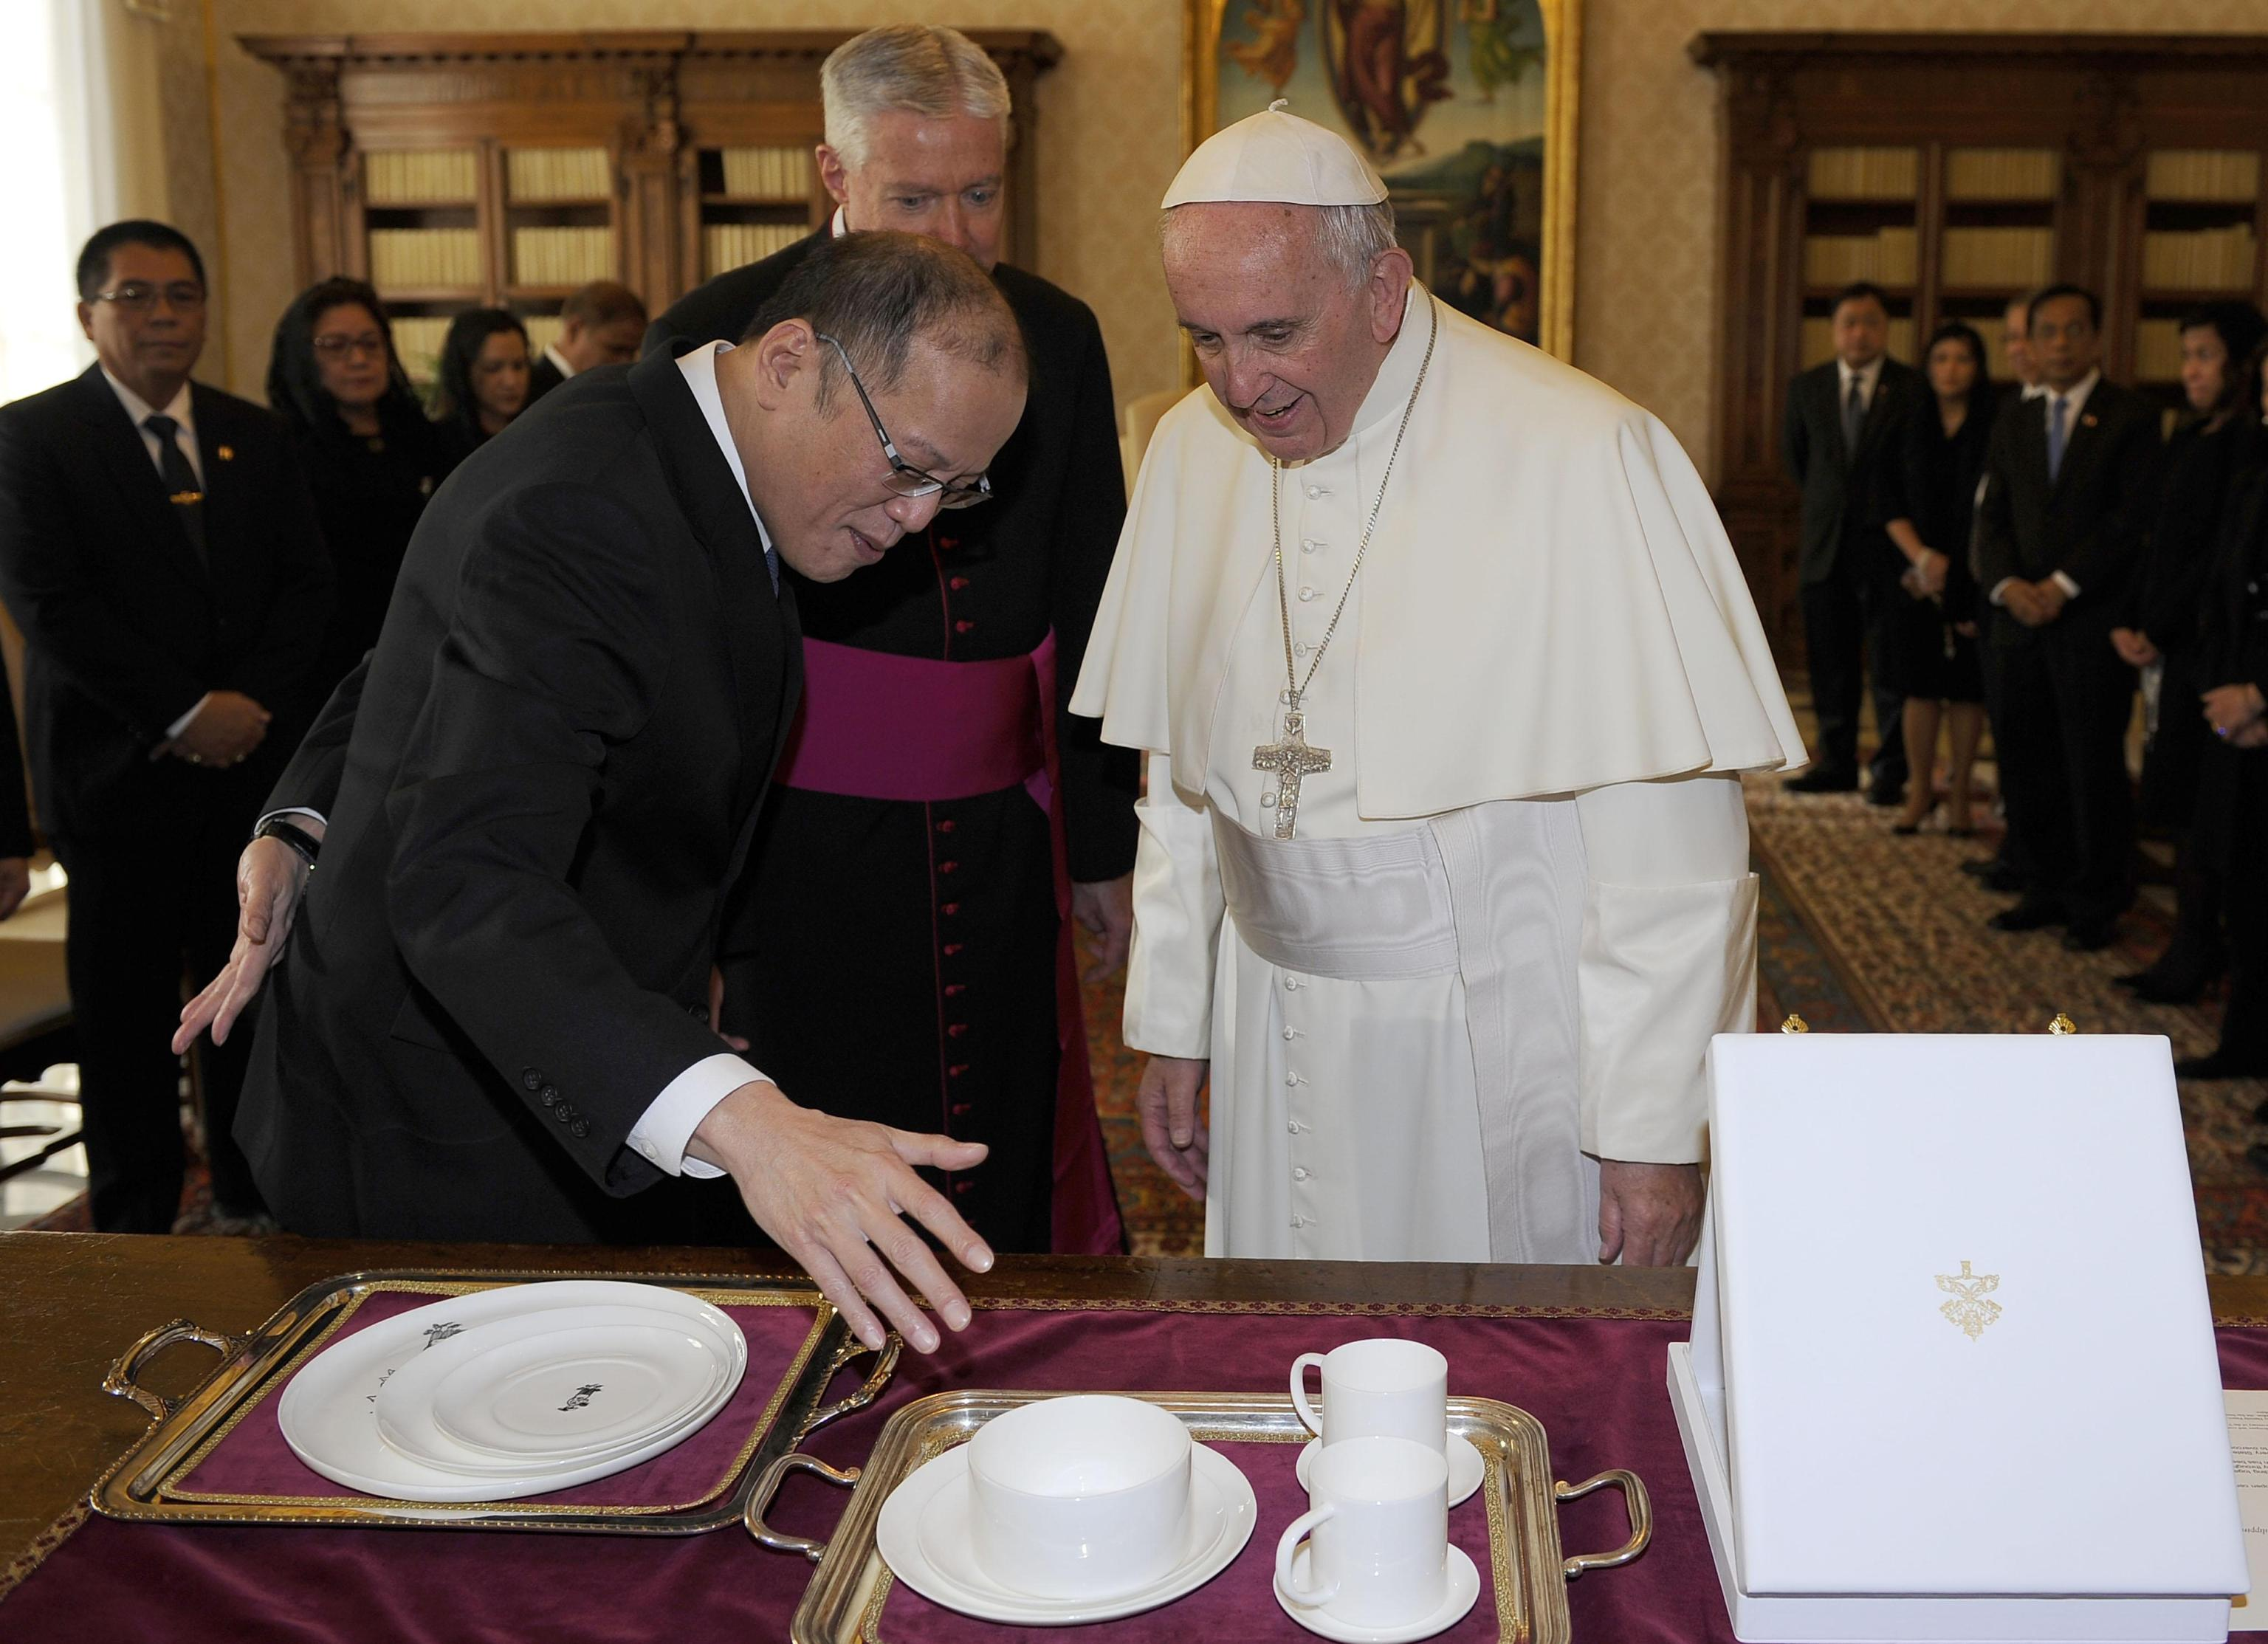 Pope Francis speaks with President Benigno S. Aquino III of the Philippines  during a private audience at the Vatican City